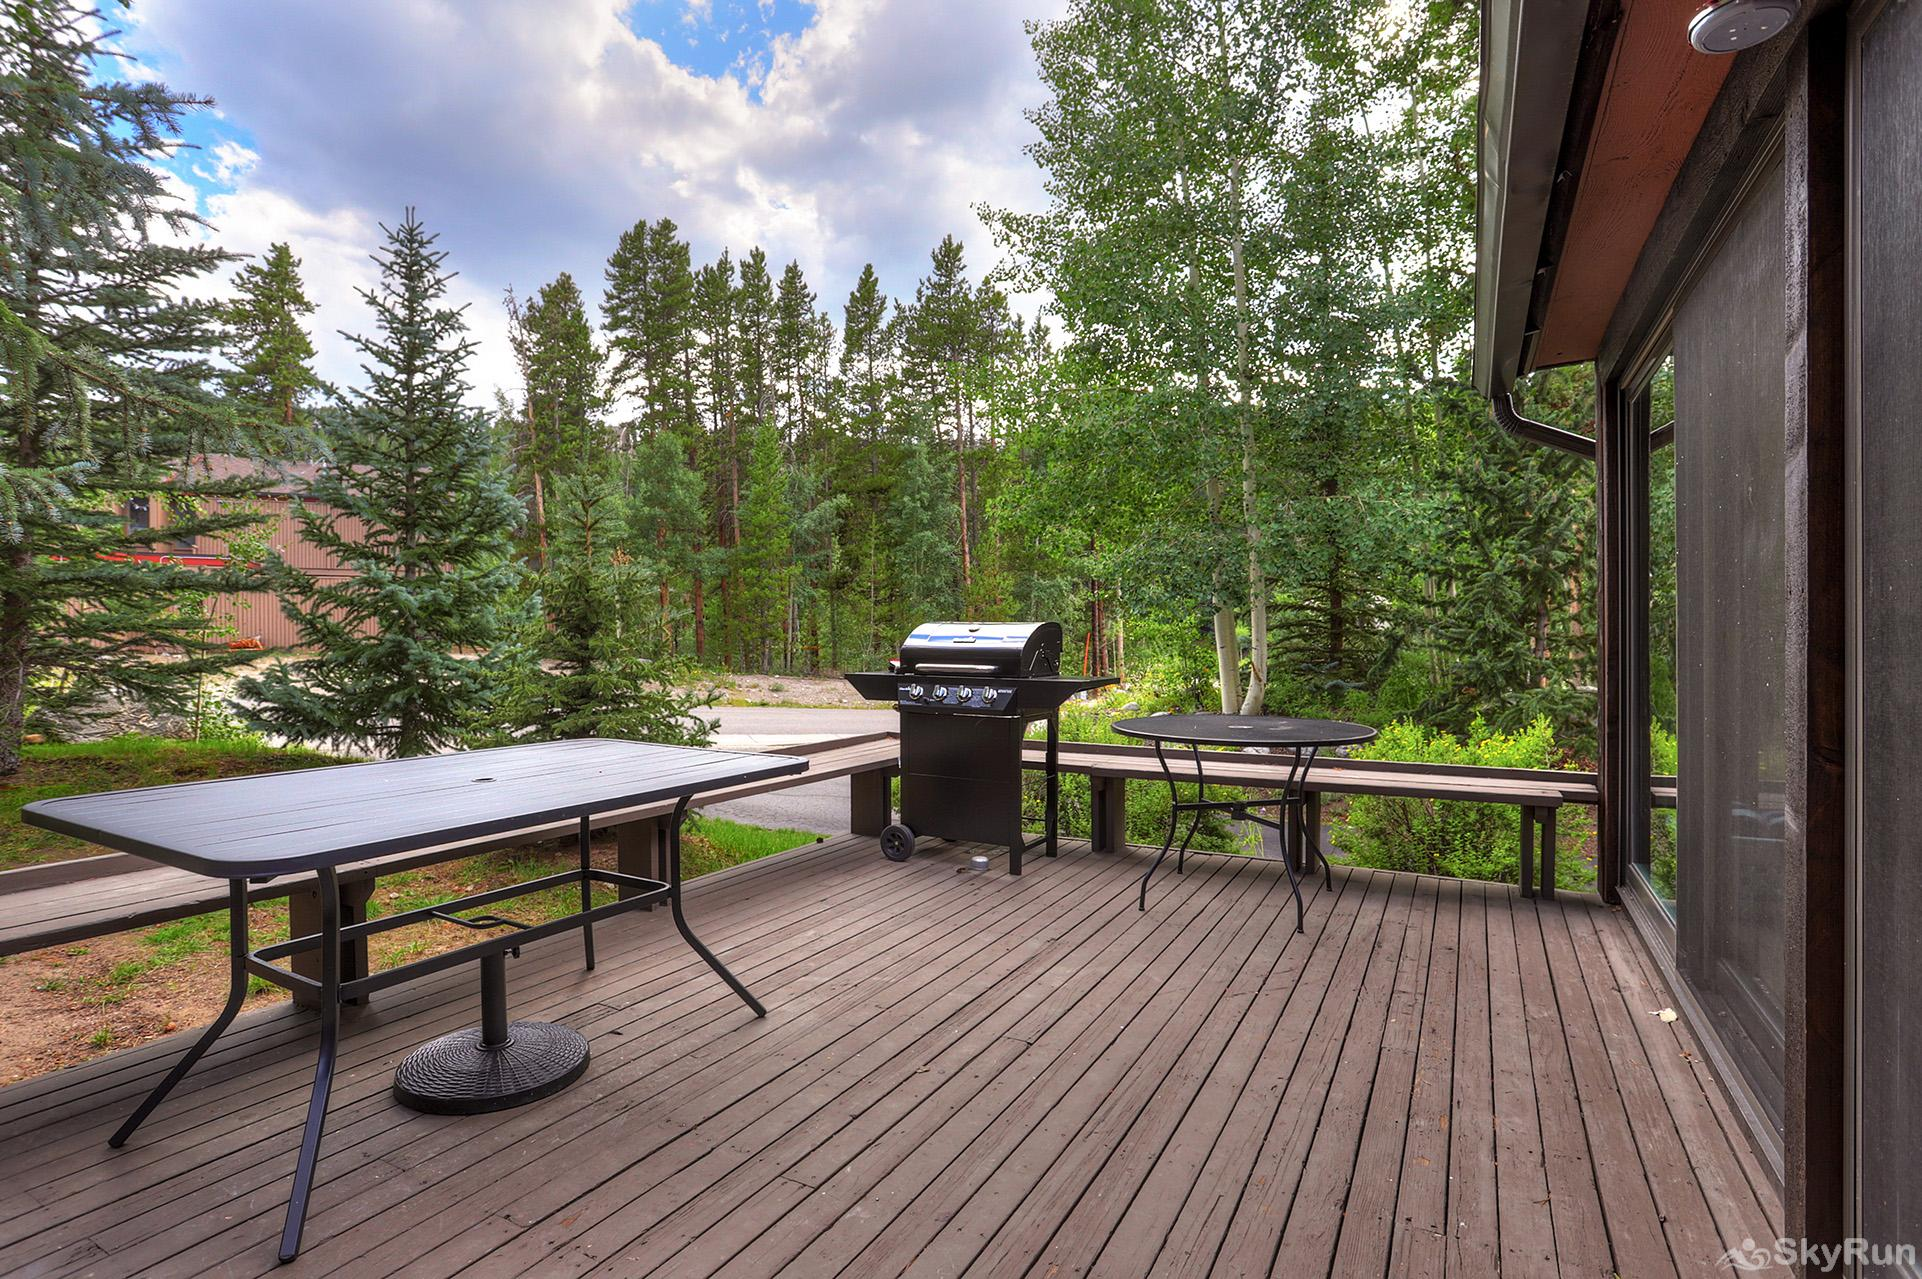 Mill Run 3 Grill out on your private back deck and enjoy the fresh air!